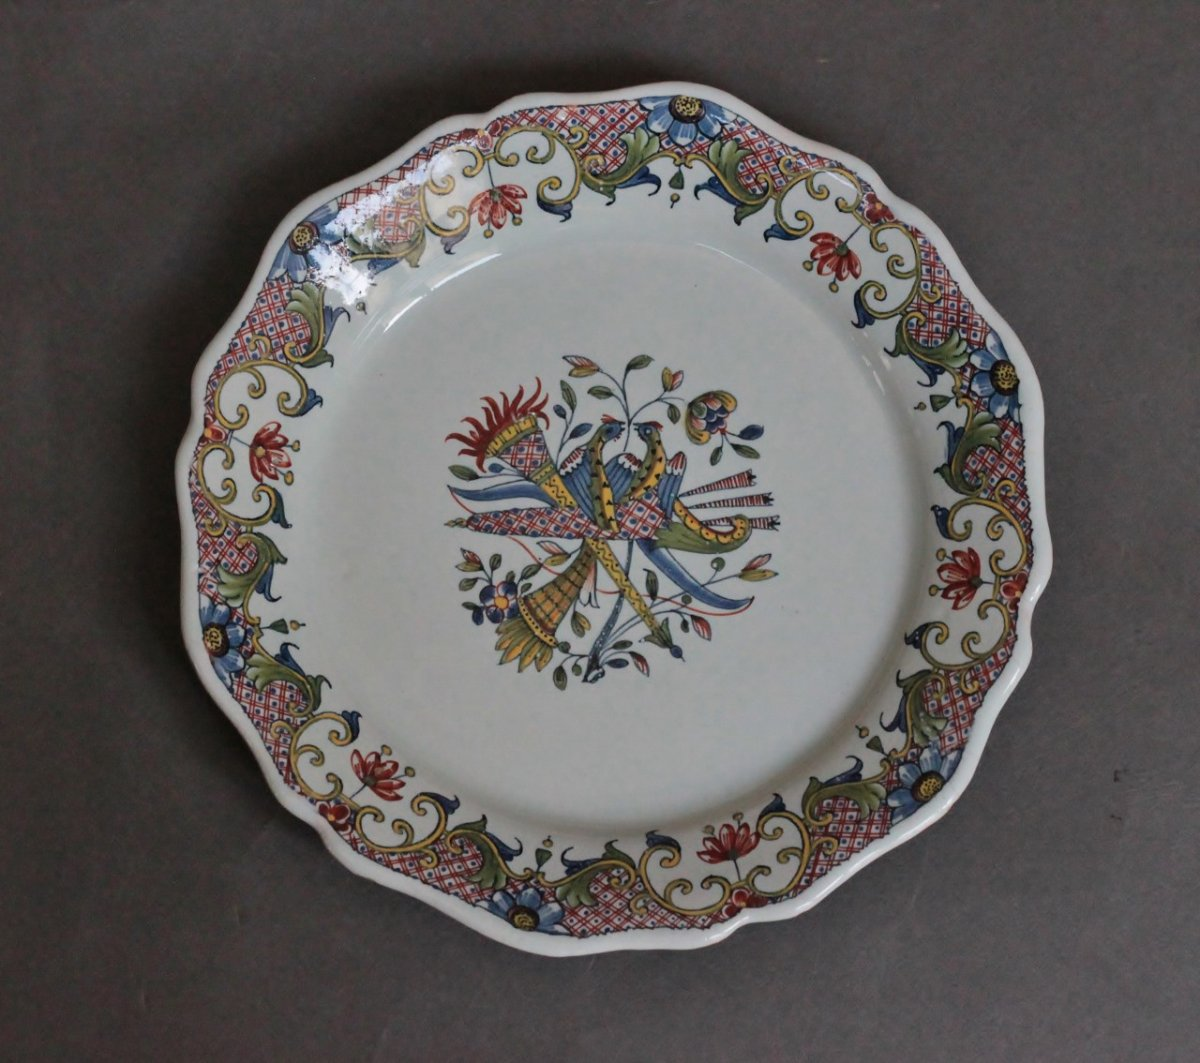 Rouen Earthenware Plate With Quiver Decor, Eighteenth Century.